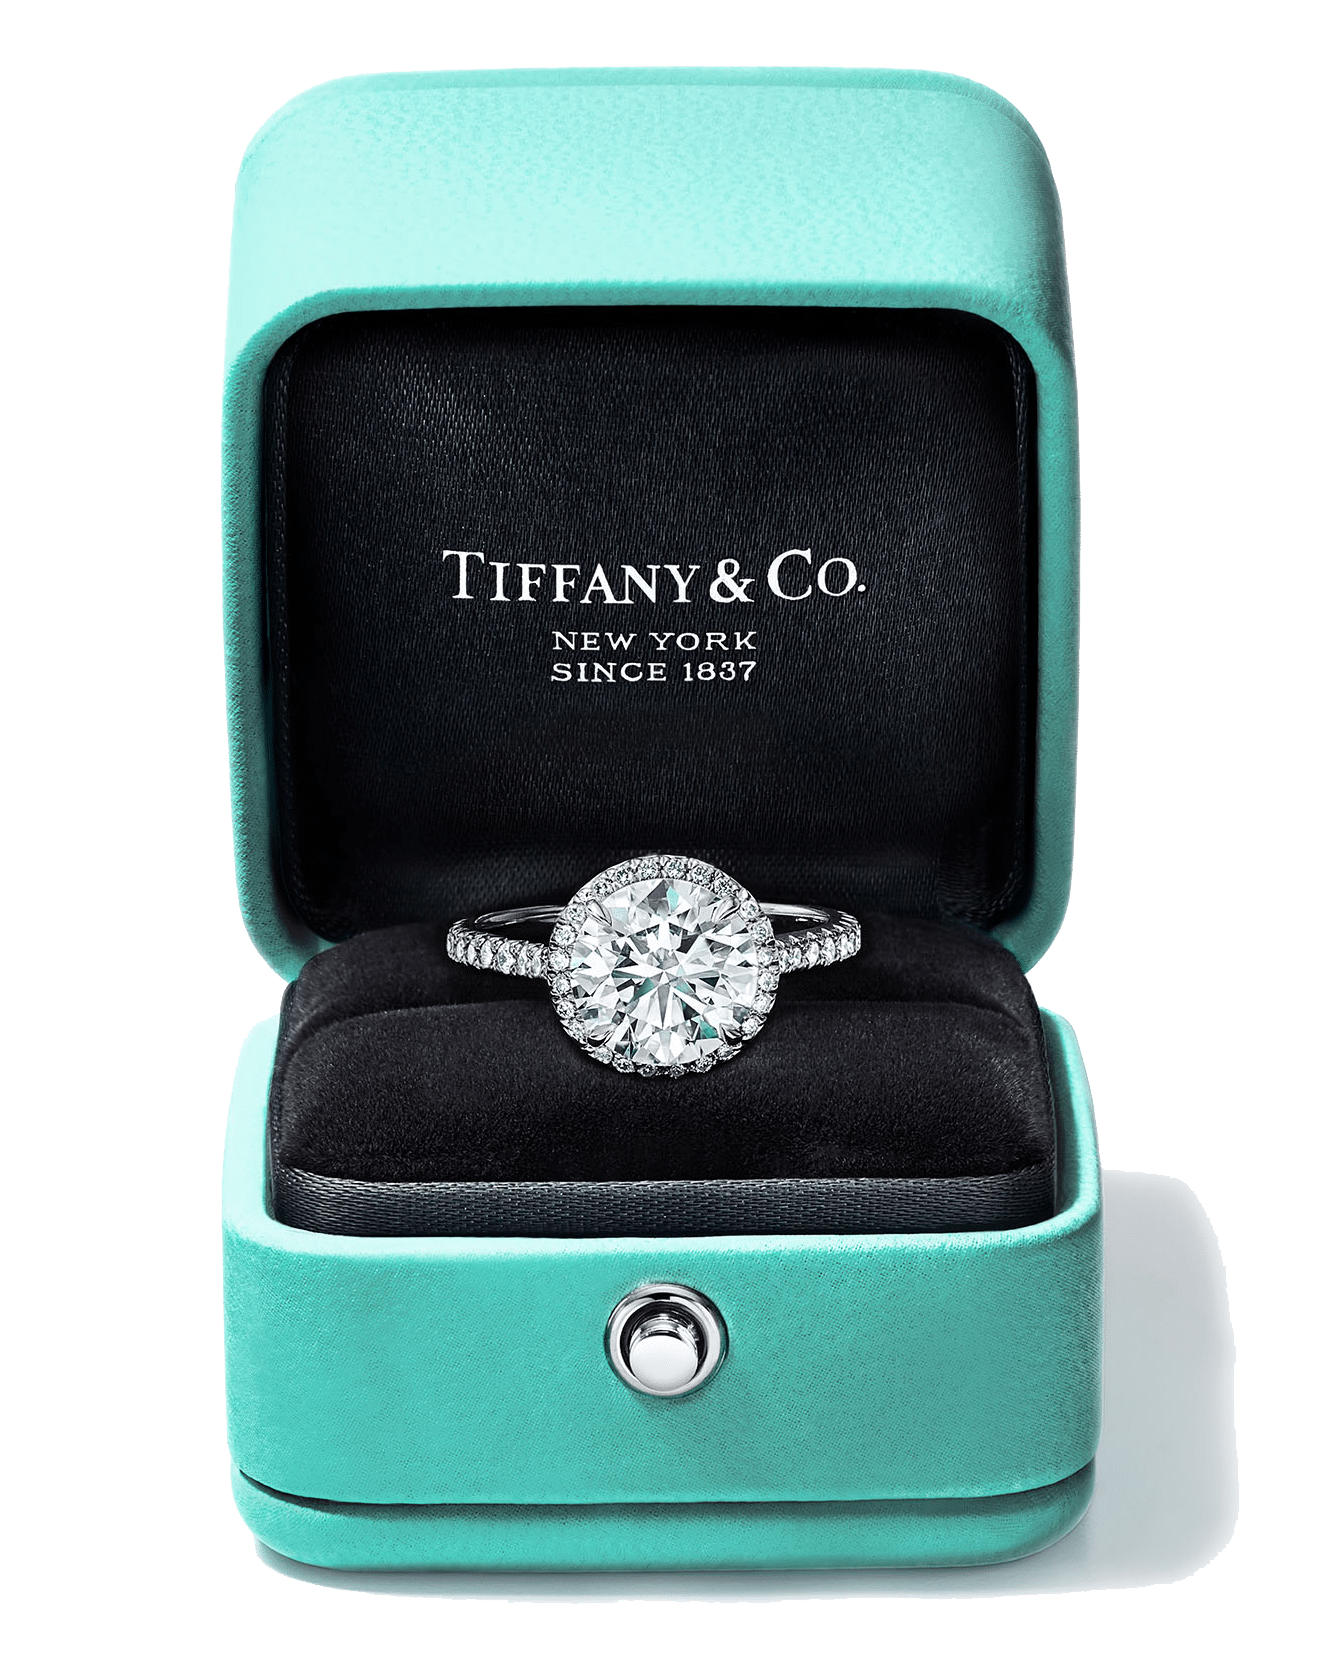 Tiffany & Co. X Daniel Tam